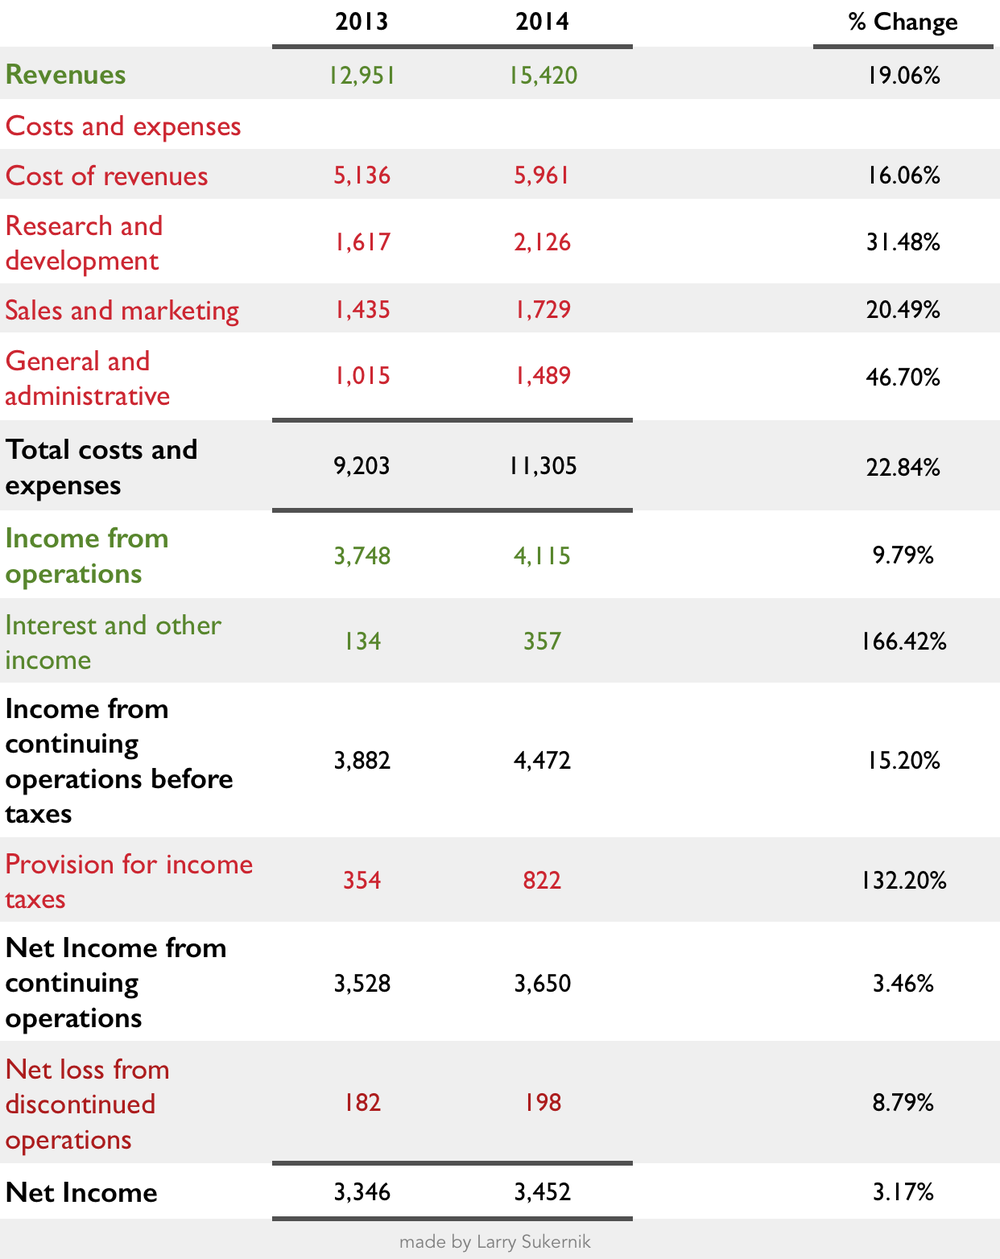 Google Q1 2014 Income Statement. Q1 2013 included for comparison.  - Items highlighted in red reduce net income.  - Items highlighted in green increase net income. - Items in black are totals.